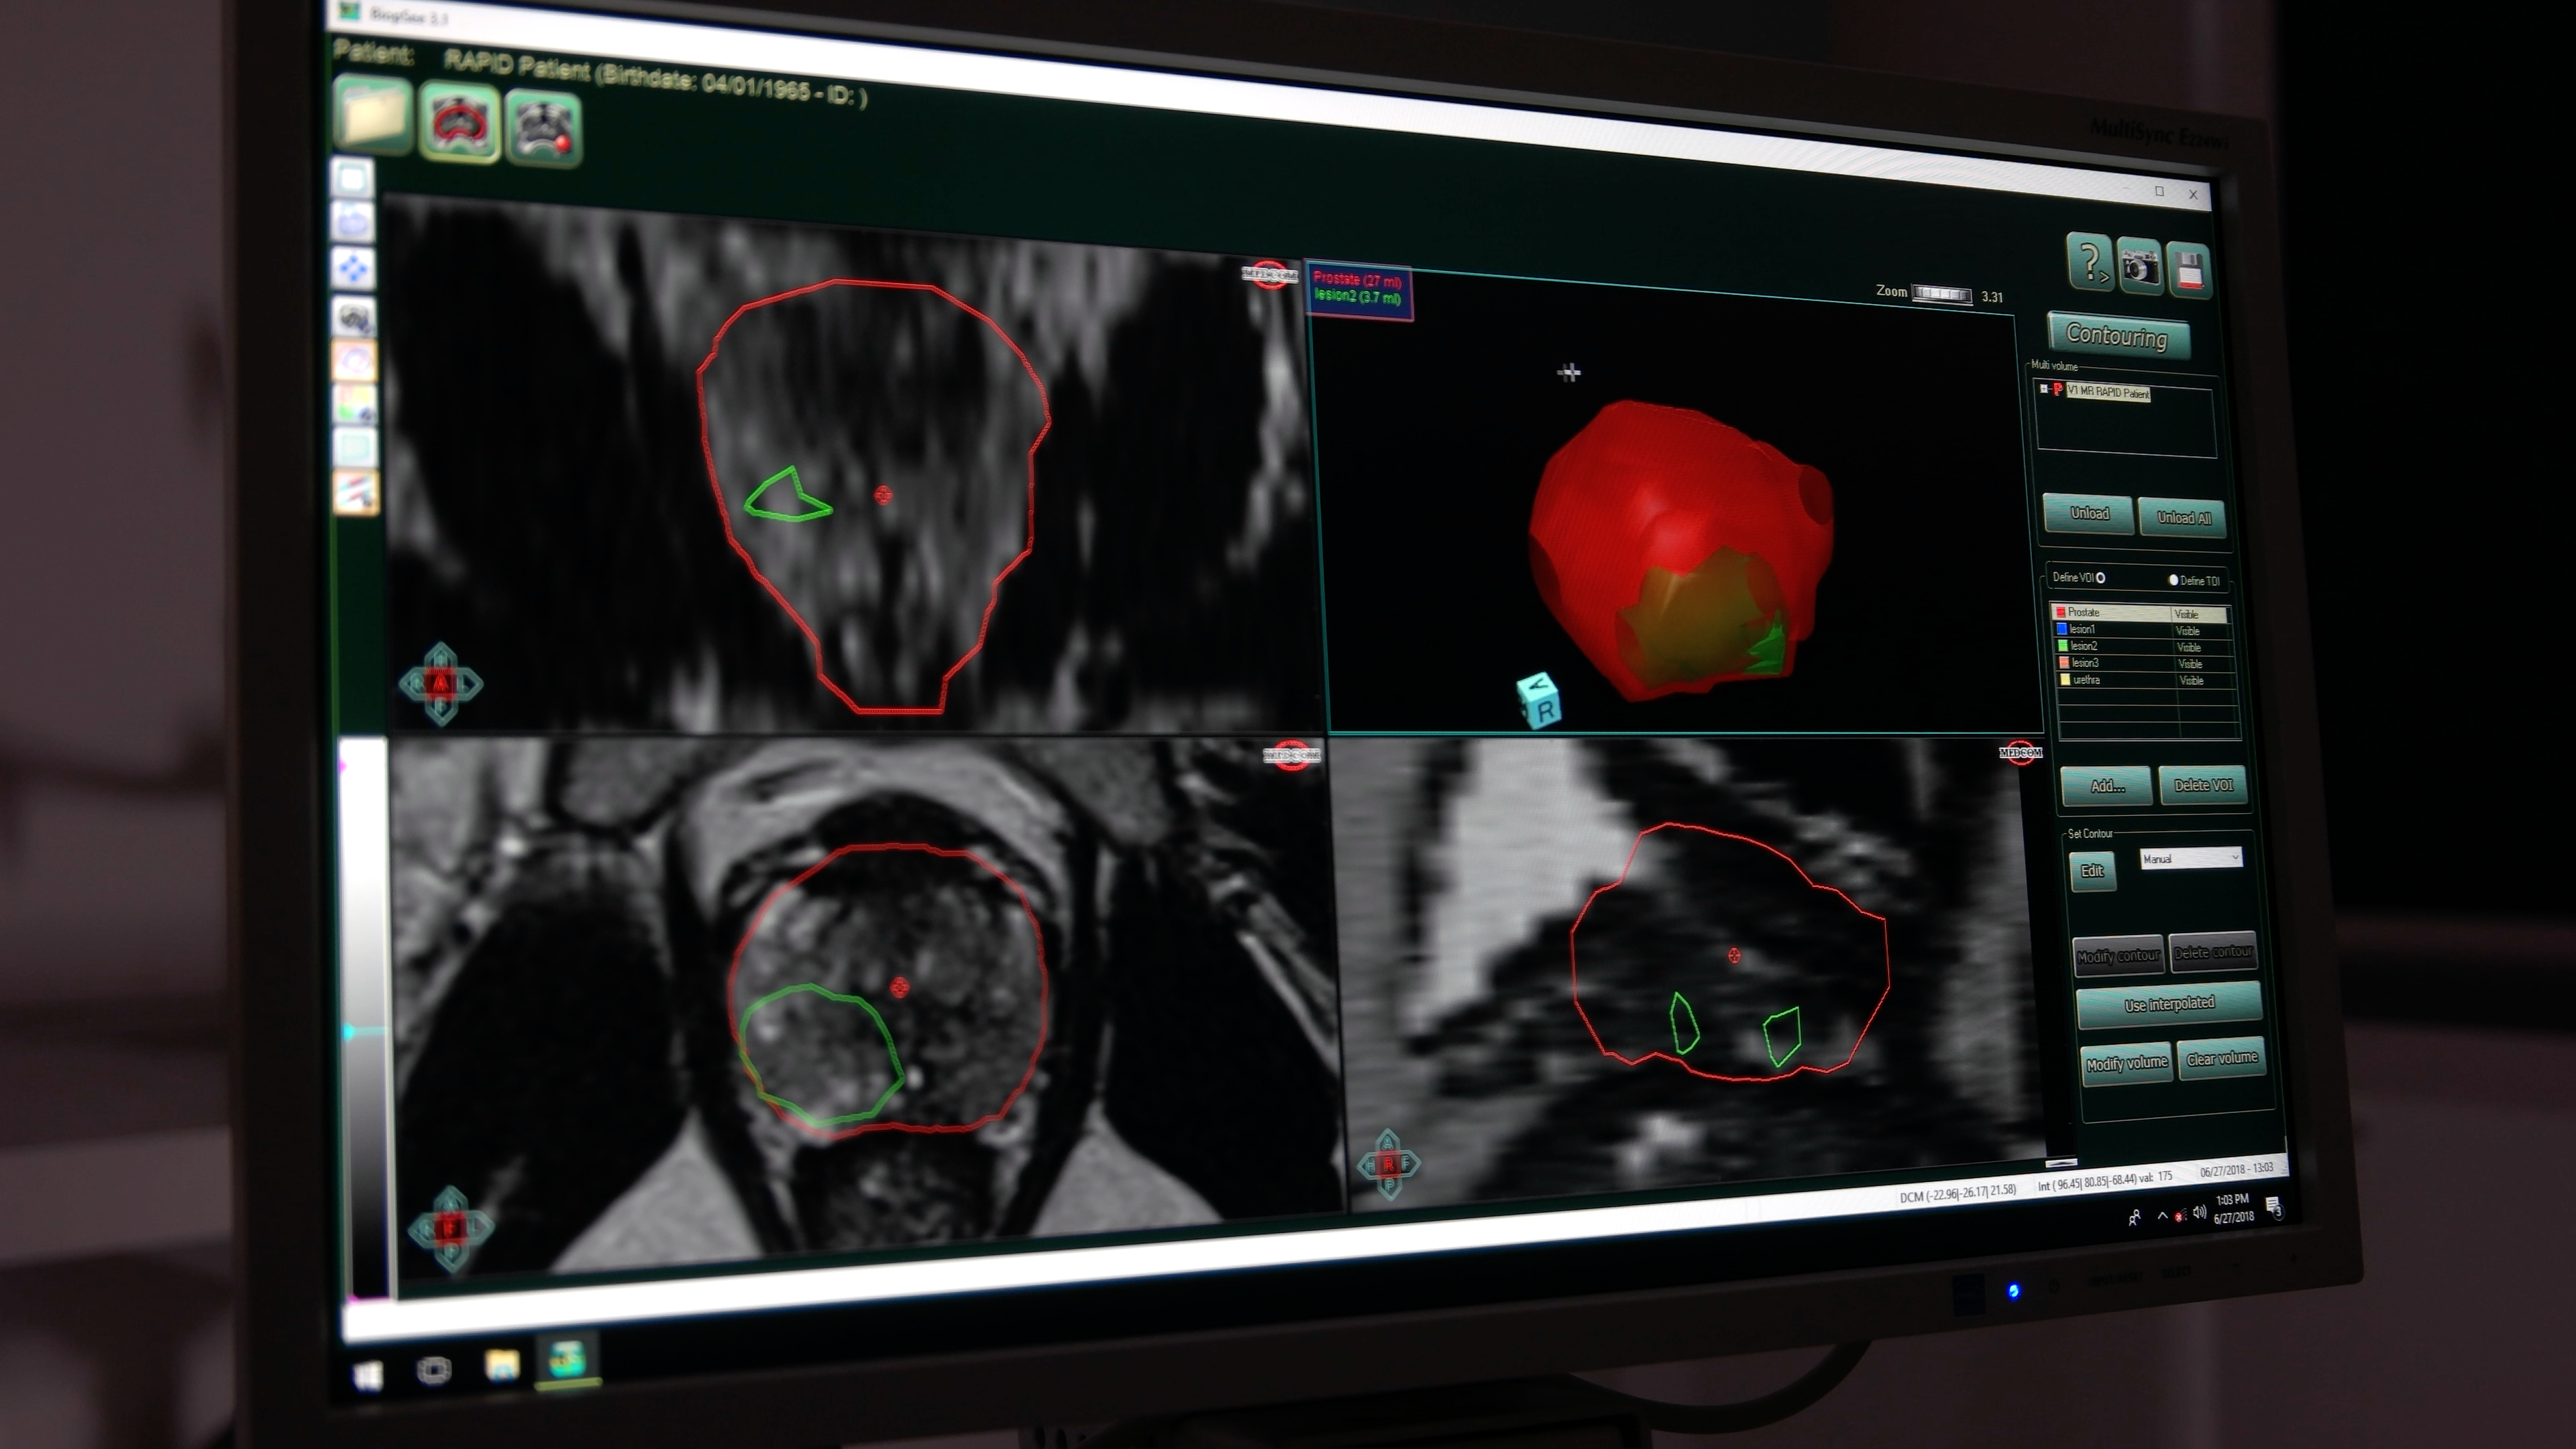 Fusion biopsy images showing prostate lesions